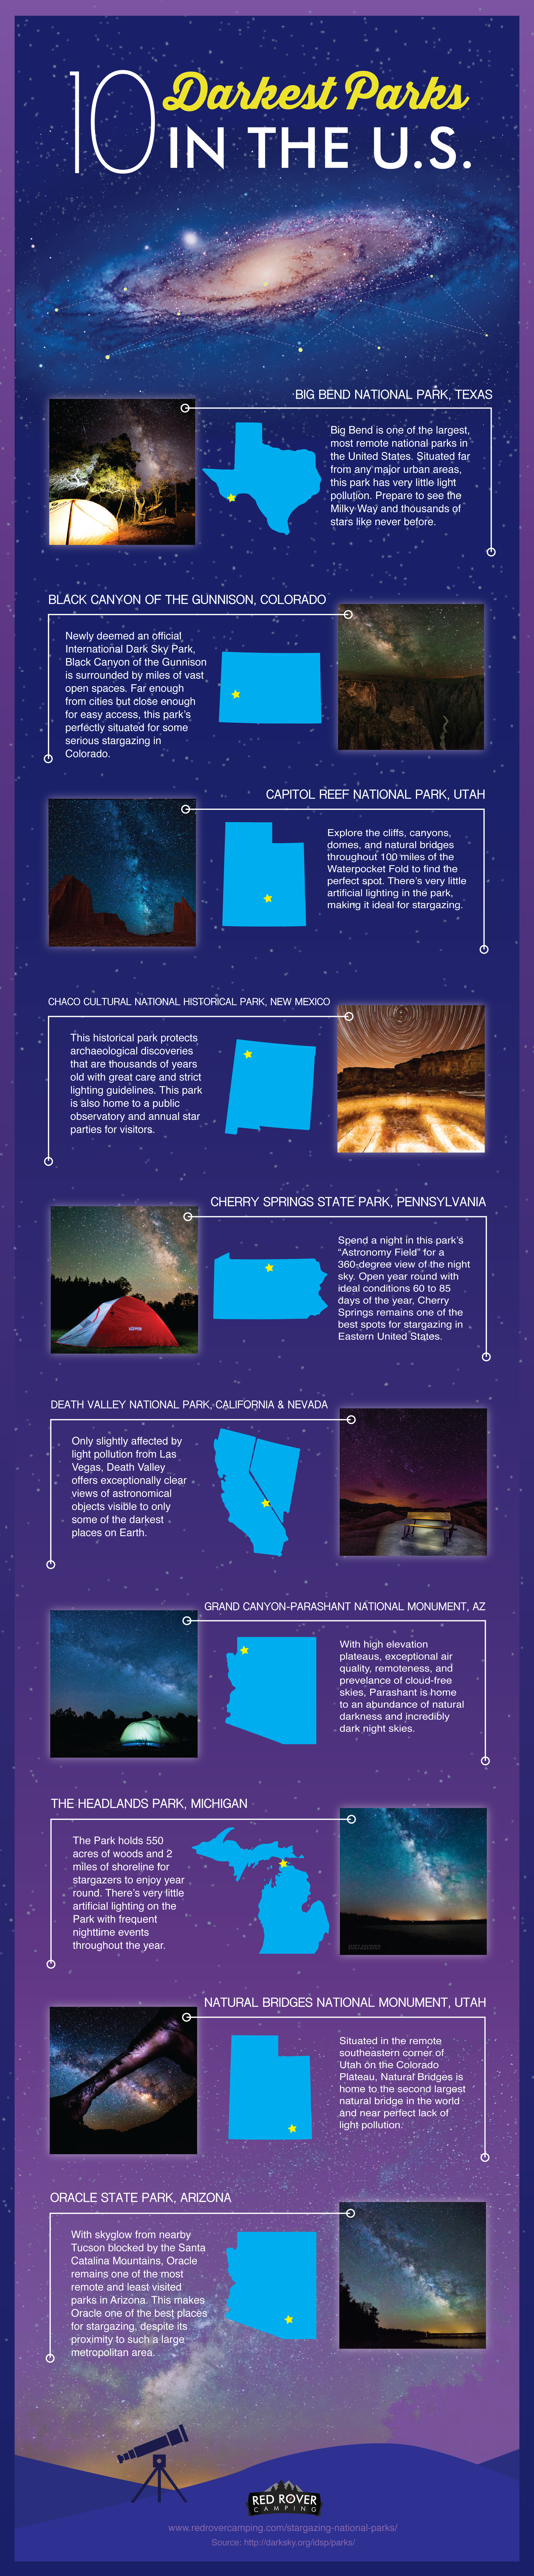 Want to go stargazing in US national parks Check out the 10